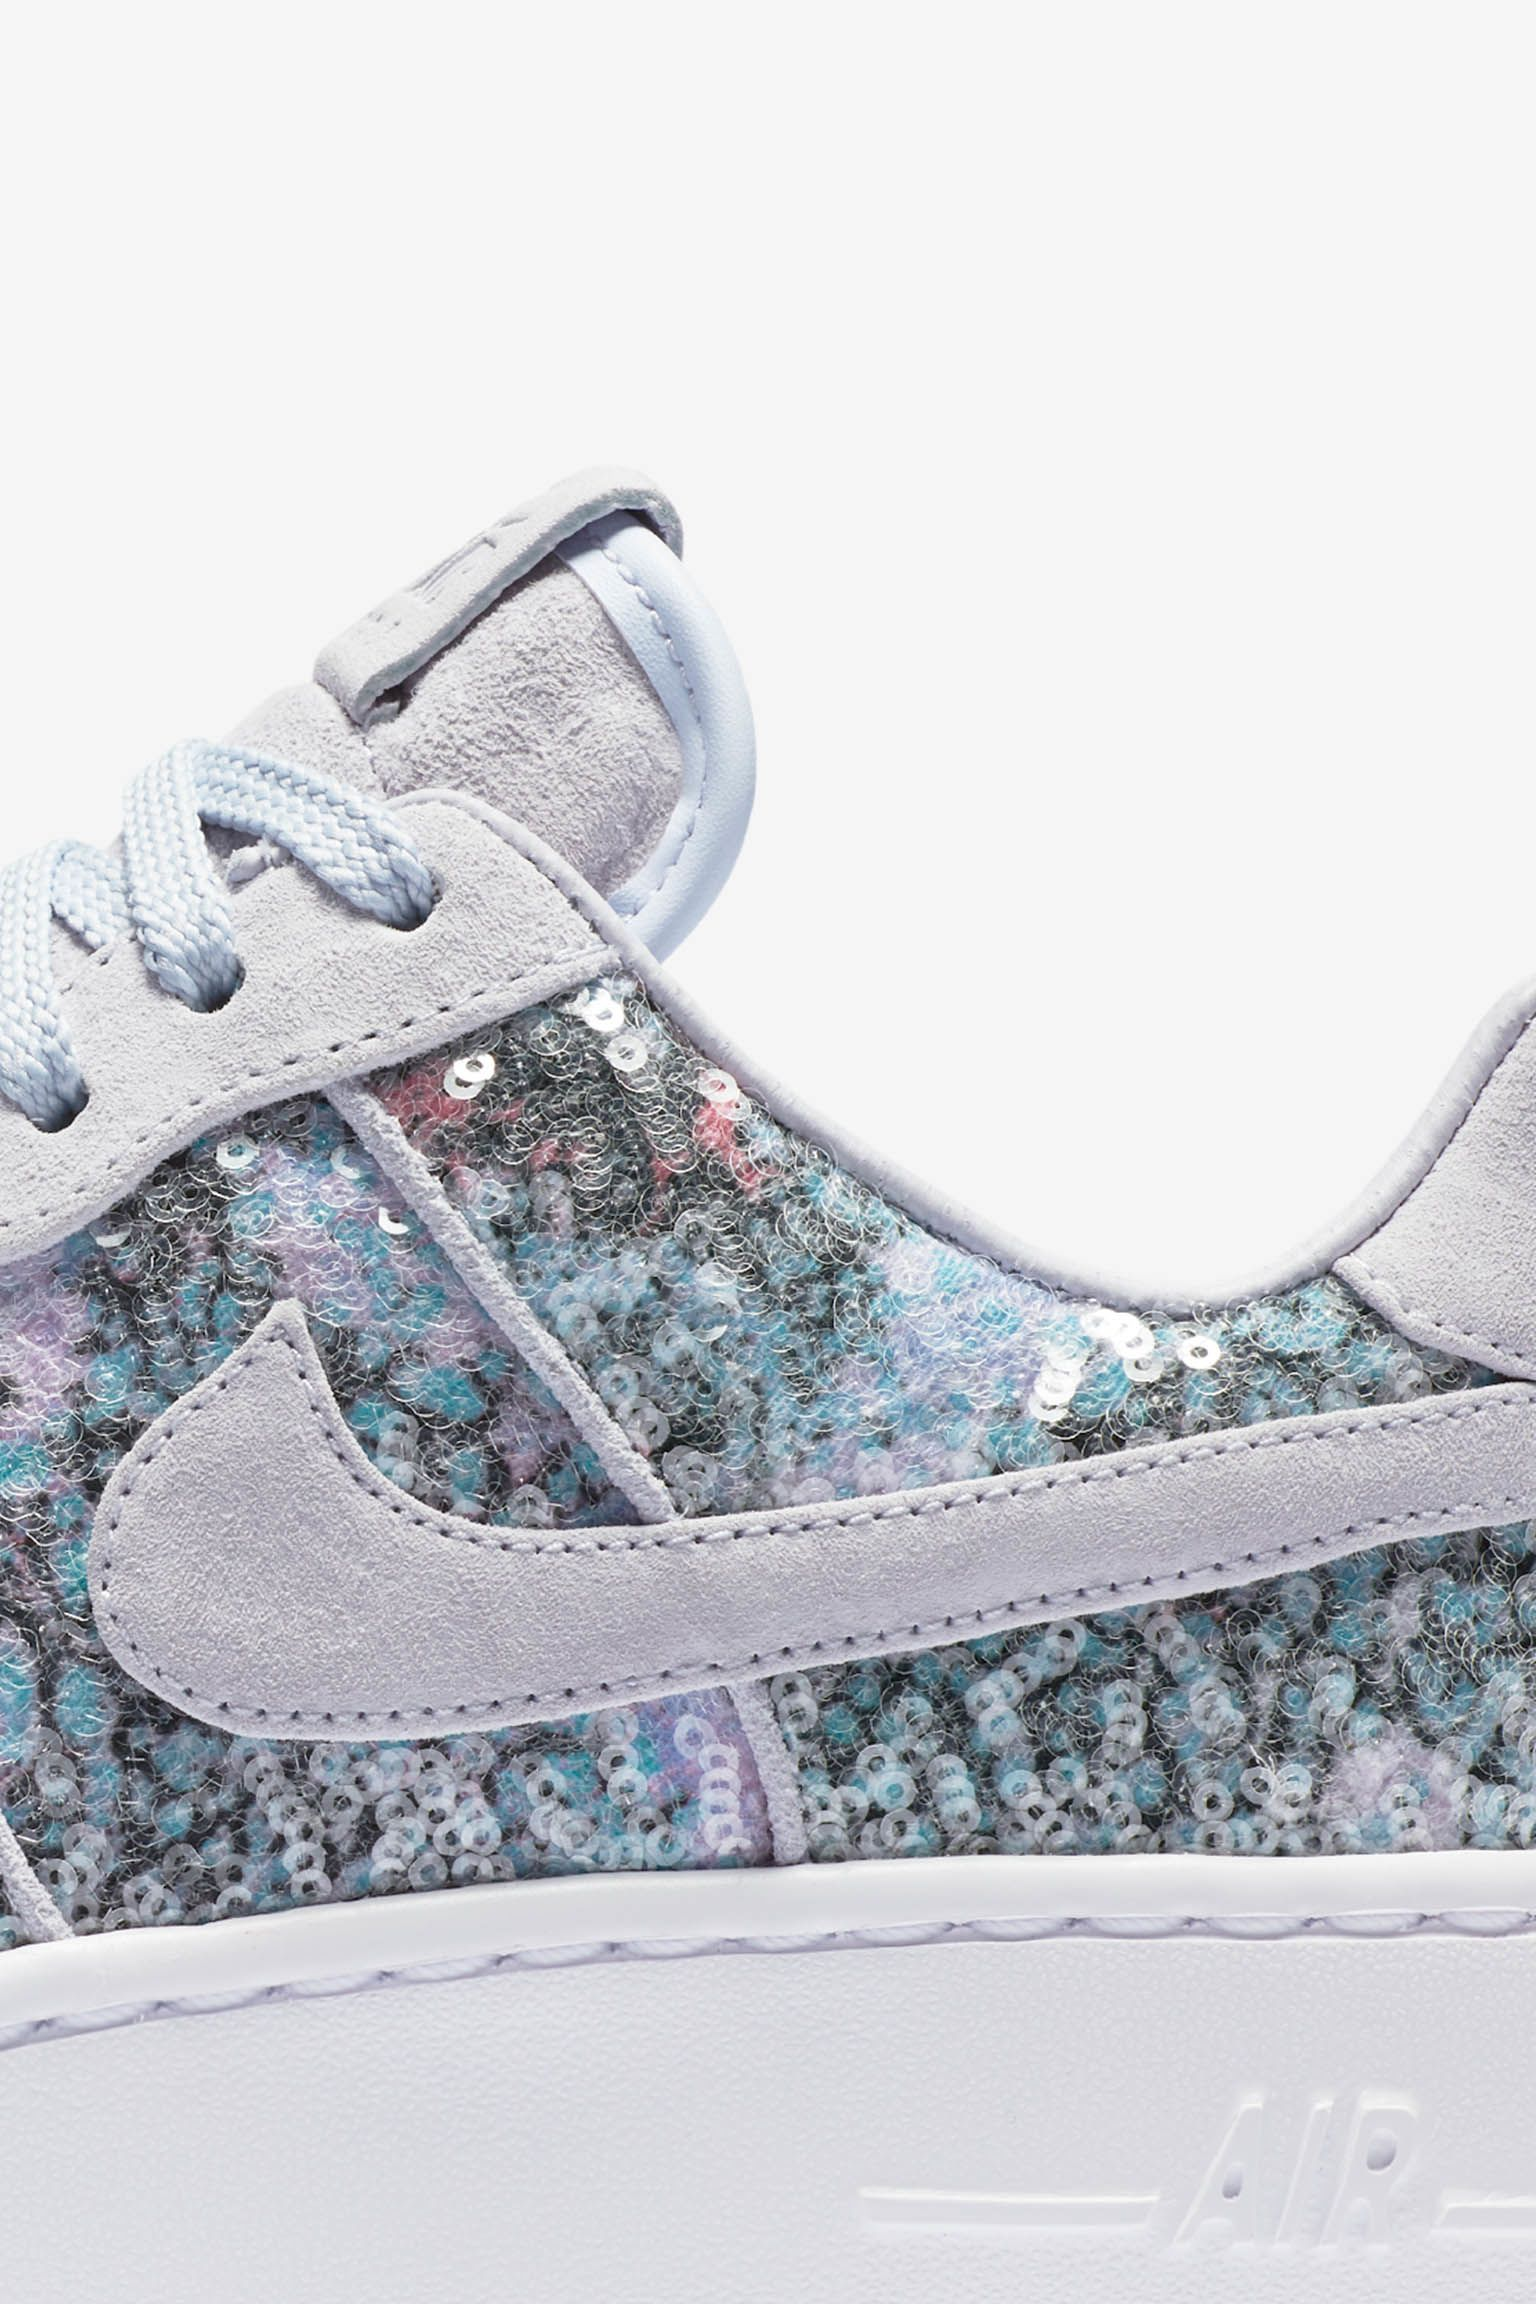 Women's Nike Air Force 1 Upstep Low 'Palest Purple'